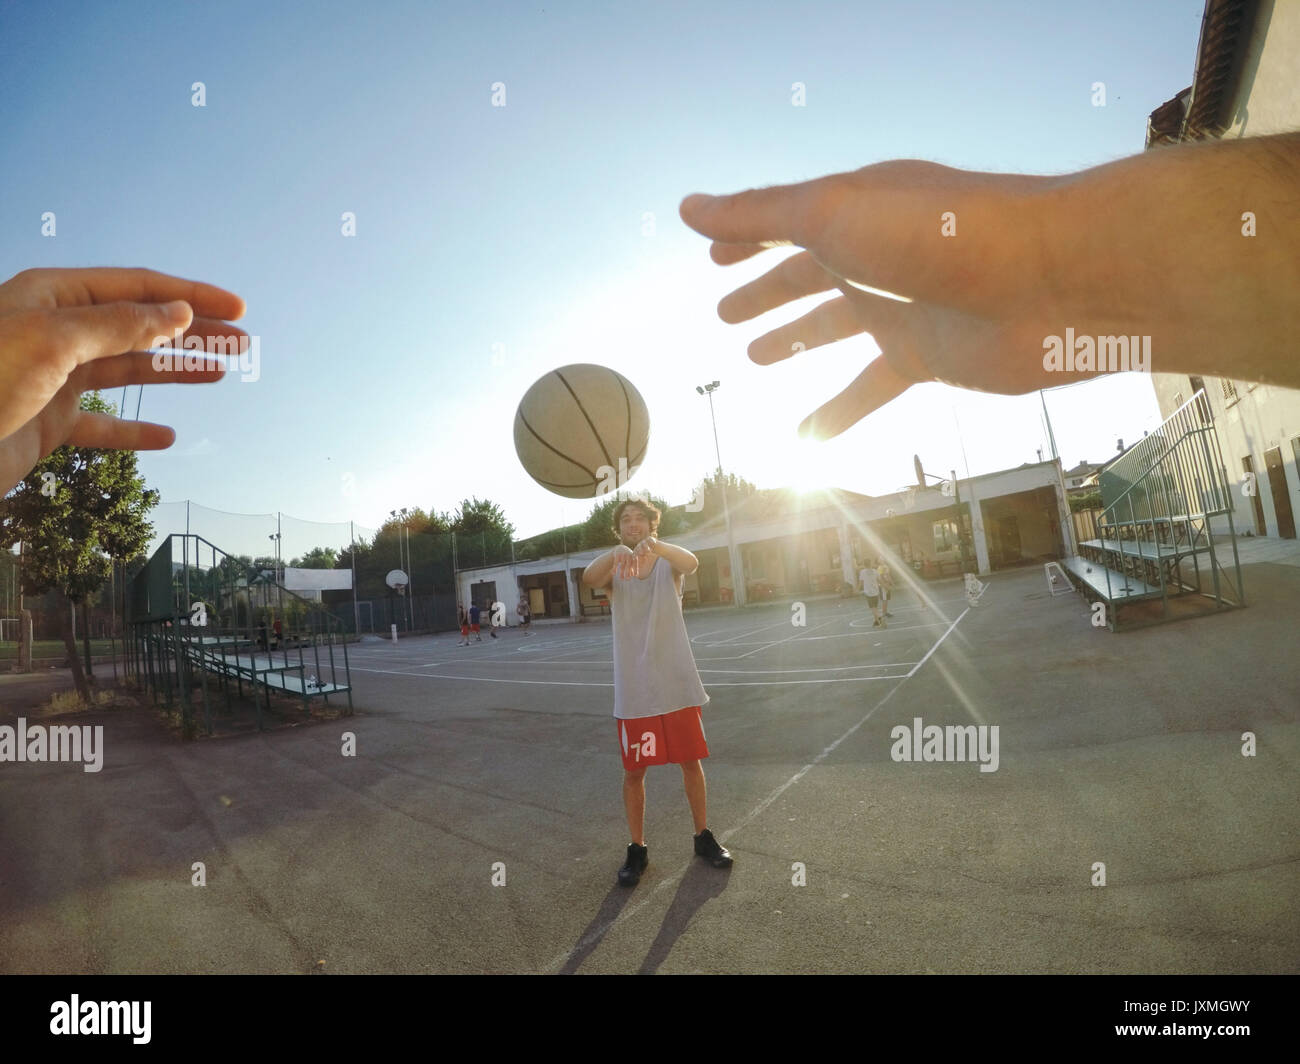 Point of view image of man throwing basketball at teammate - Stock Image